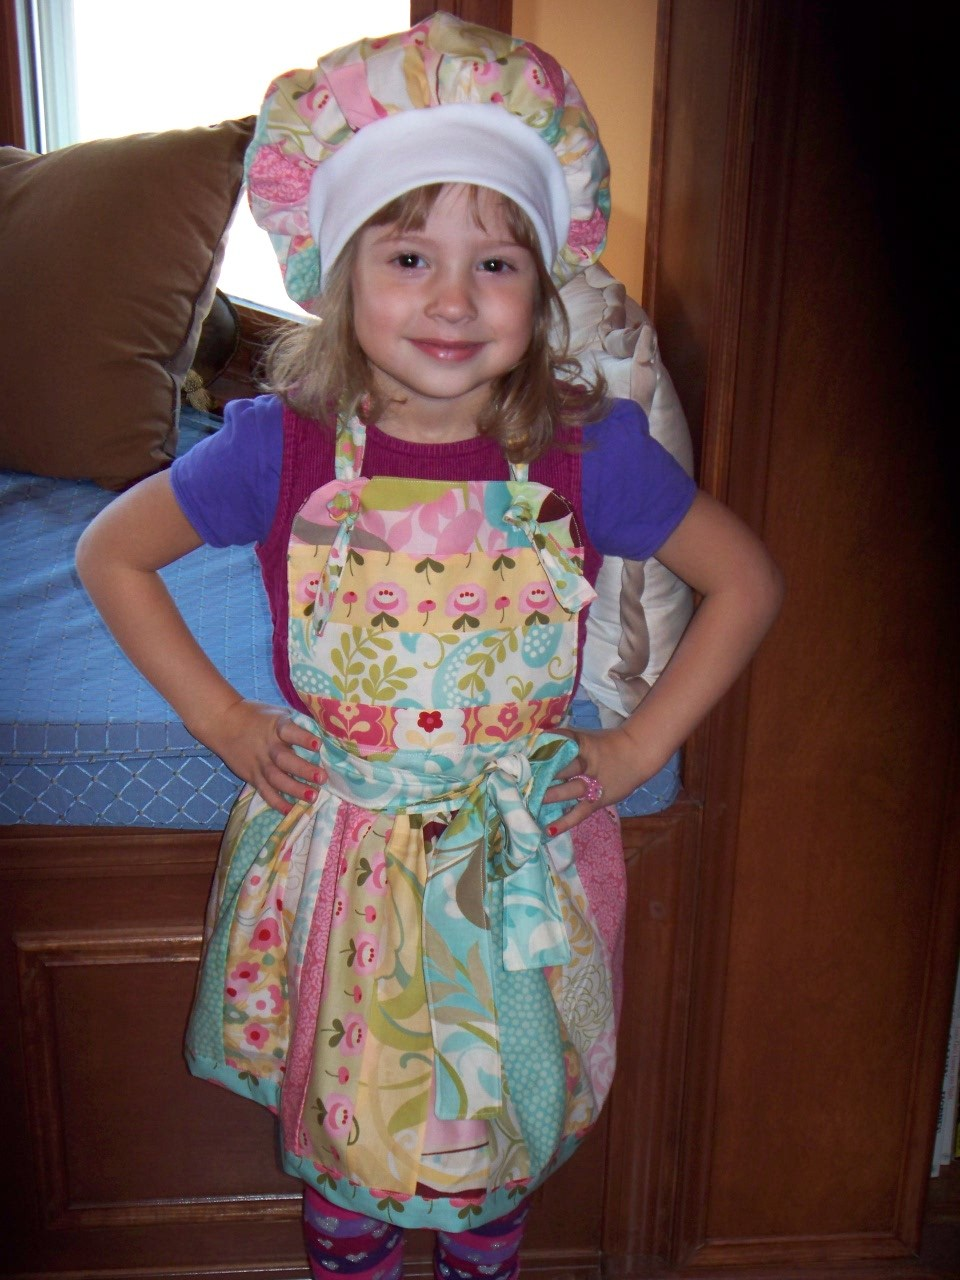 Kids decorated them with markers and stickers and had fun dressing up with aprons and chef hats. Pretty easy to adjust. Date published: Rated 4 out of 5 by MRLD from Chef Hat Chef hat is paper, easy to color, perfect for daughter's cooking class demonstration. Hats need assembly after decorating I reinforced with tape to keep /5(61).